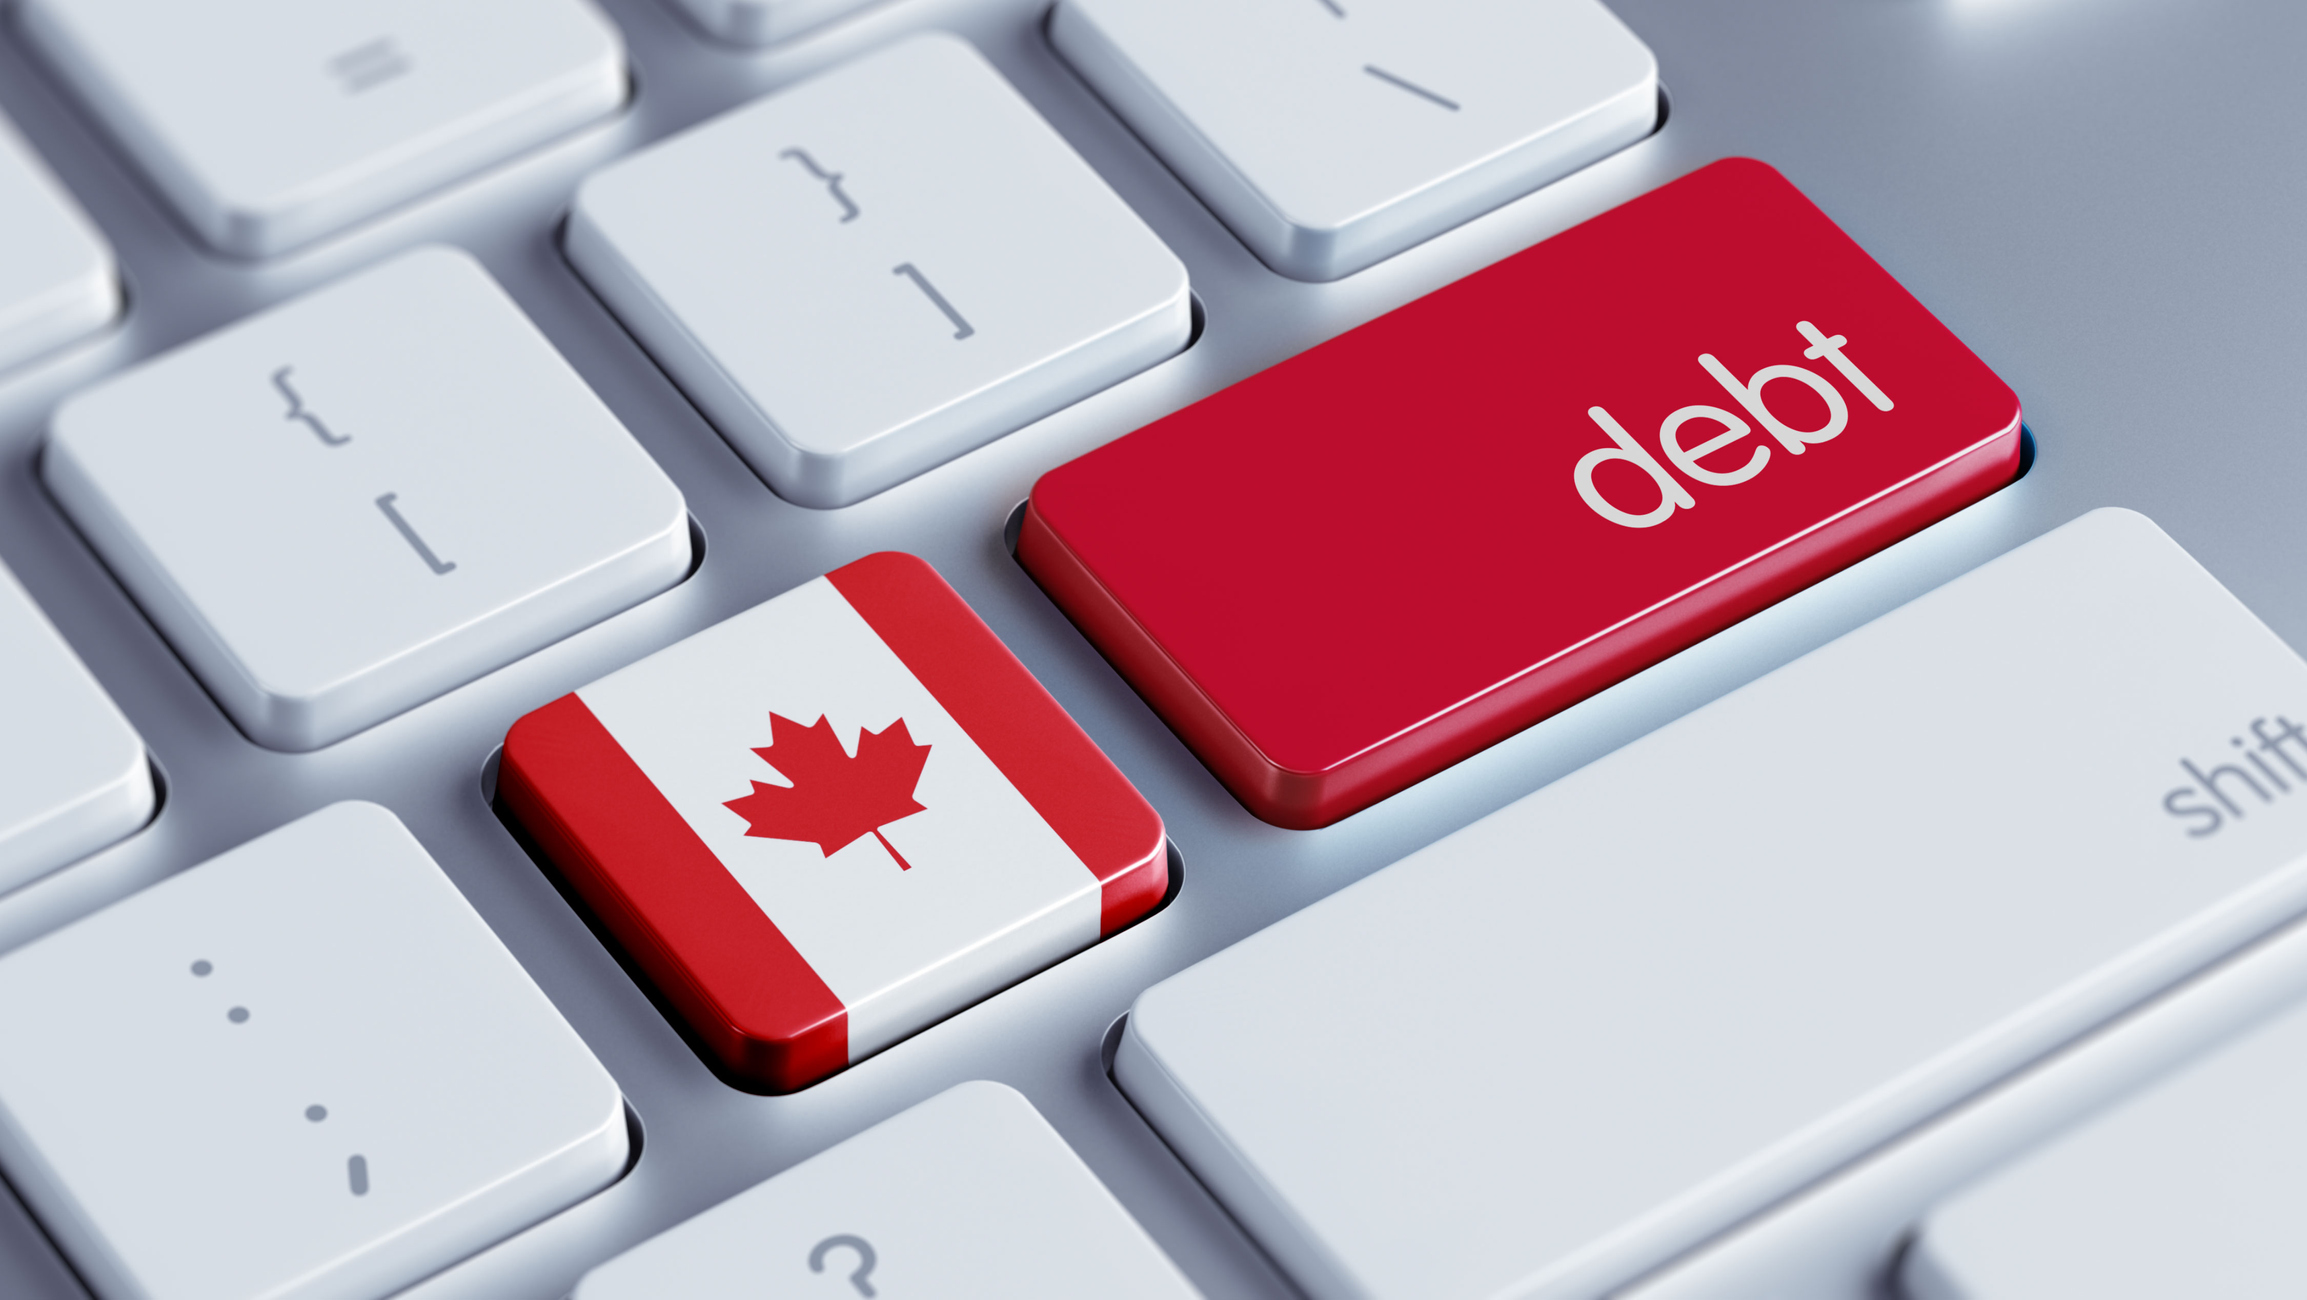 Fiscal snapshot highlights deteriorating state of federal finances